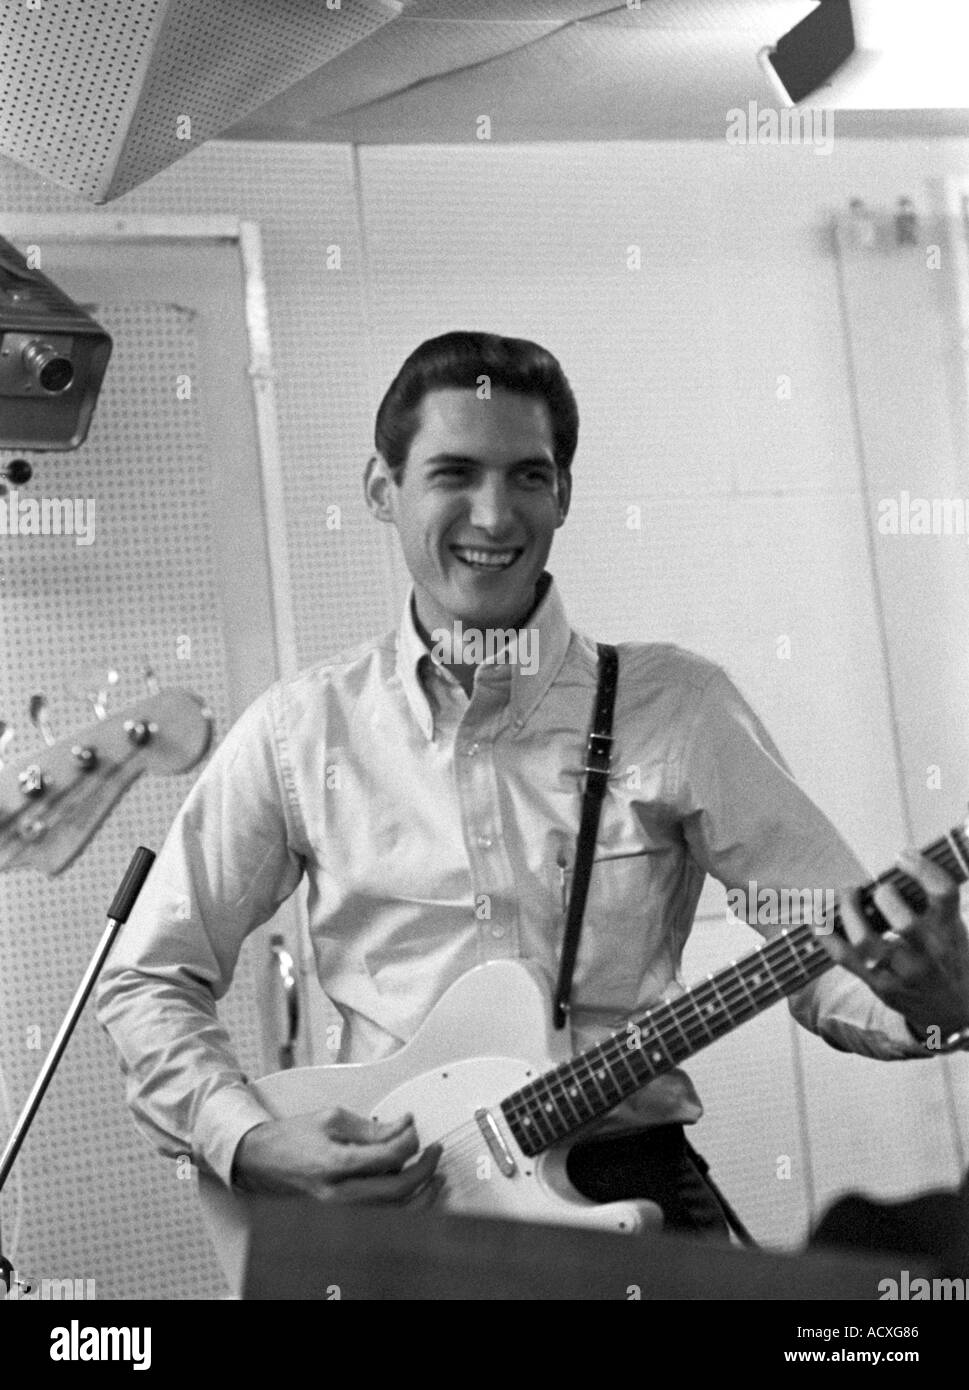 STEVE CROPPER recording with Booker T in London in 1967